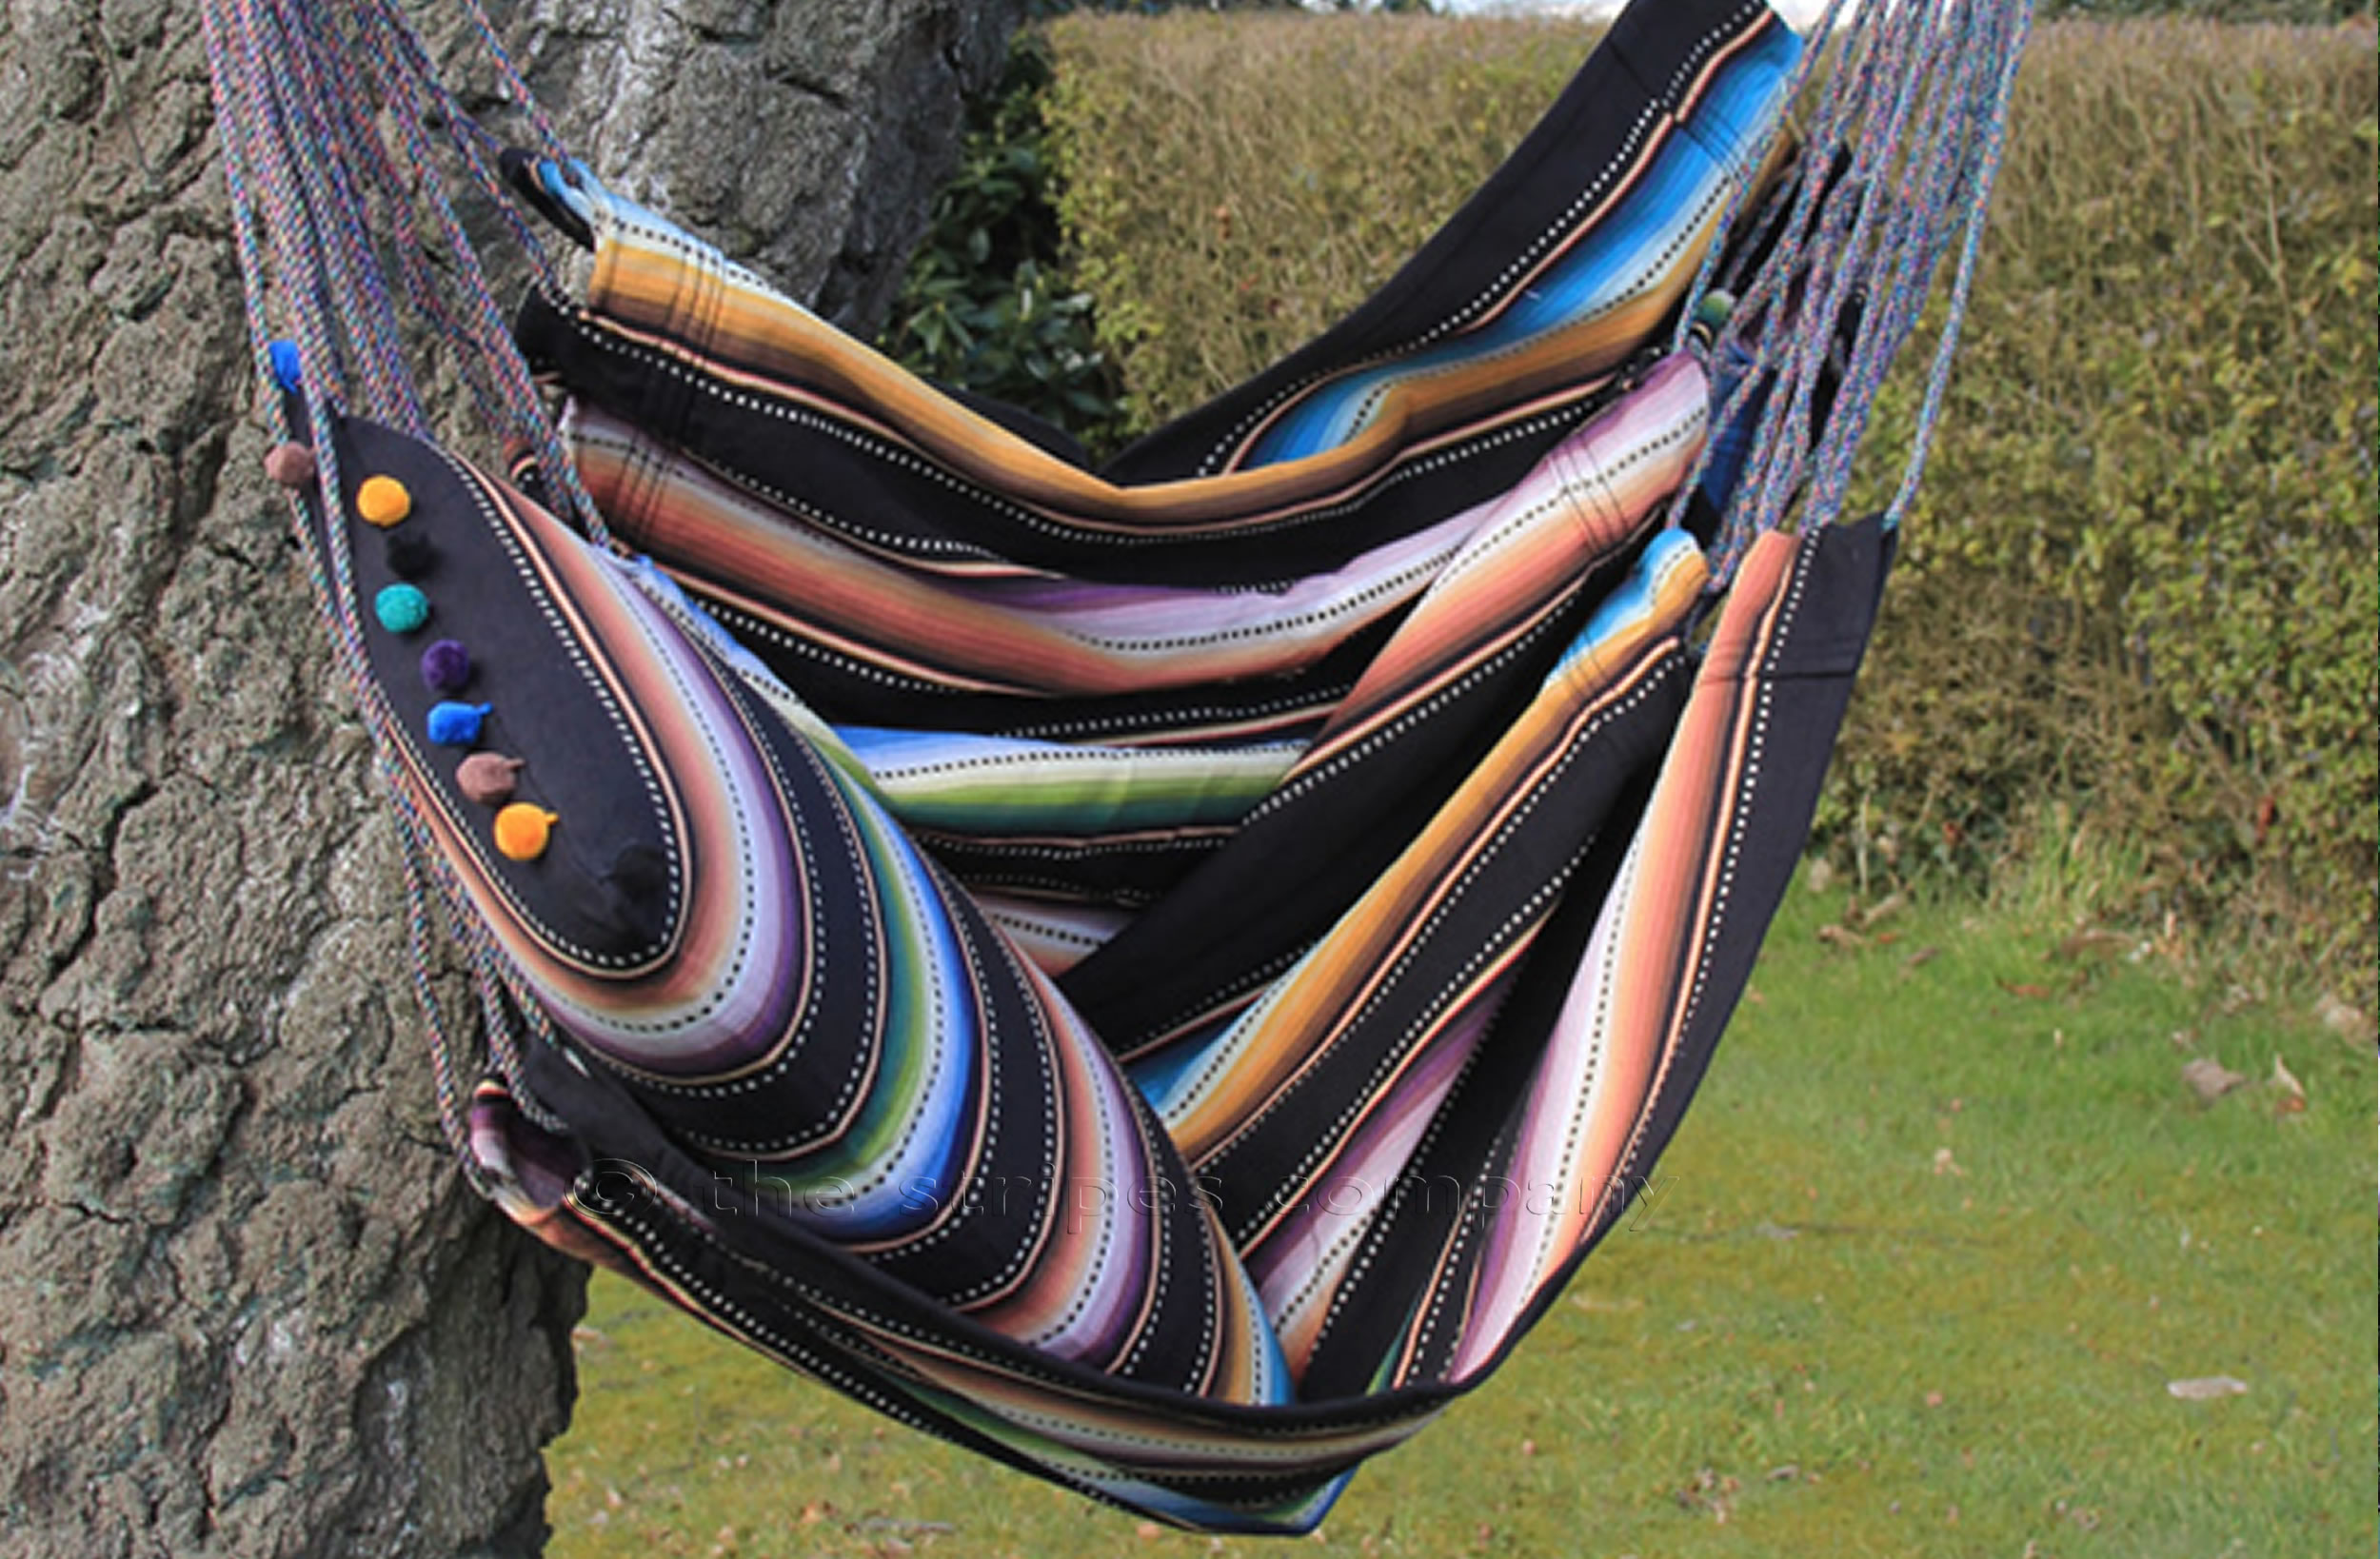 Black Turquoise White  Hanging Hammock Chairs in Striped Fabric Sack Race Stripes